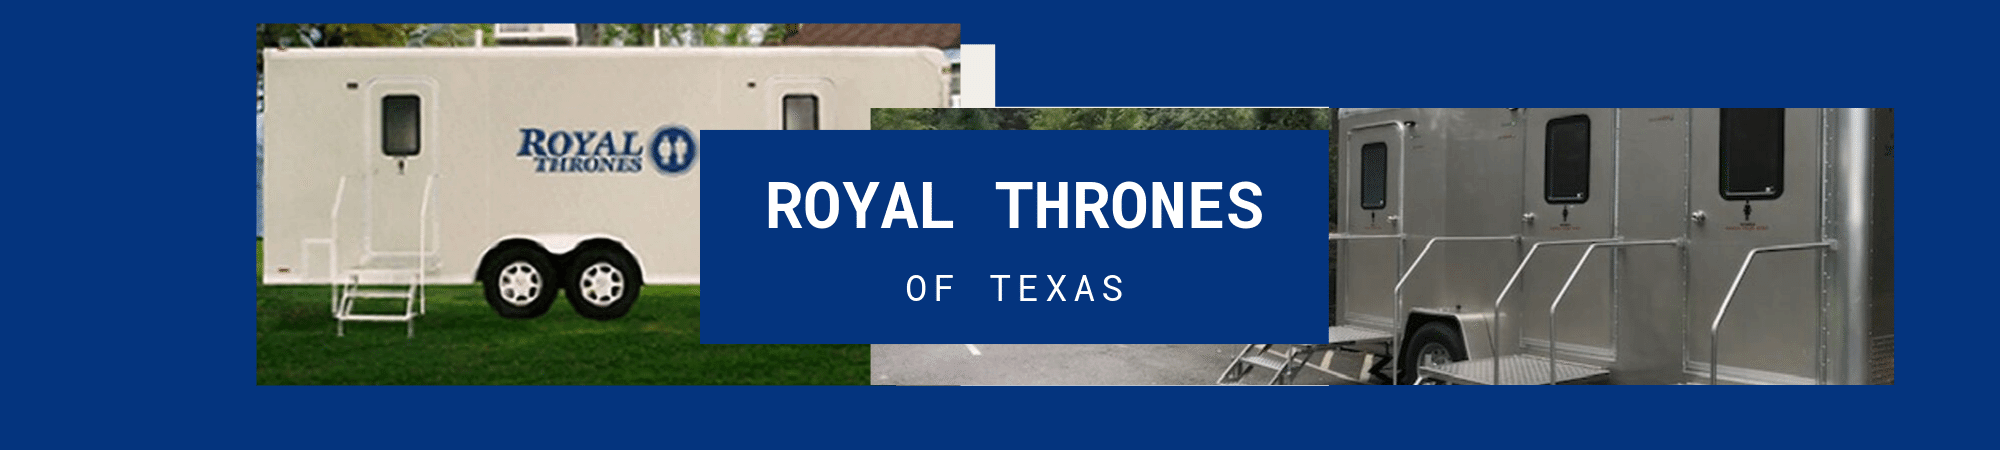 Royal Thrones of Texas